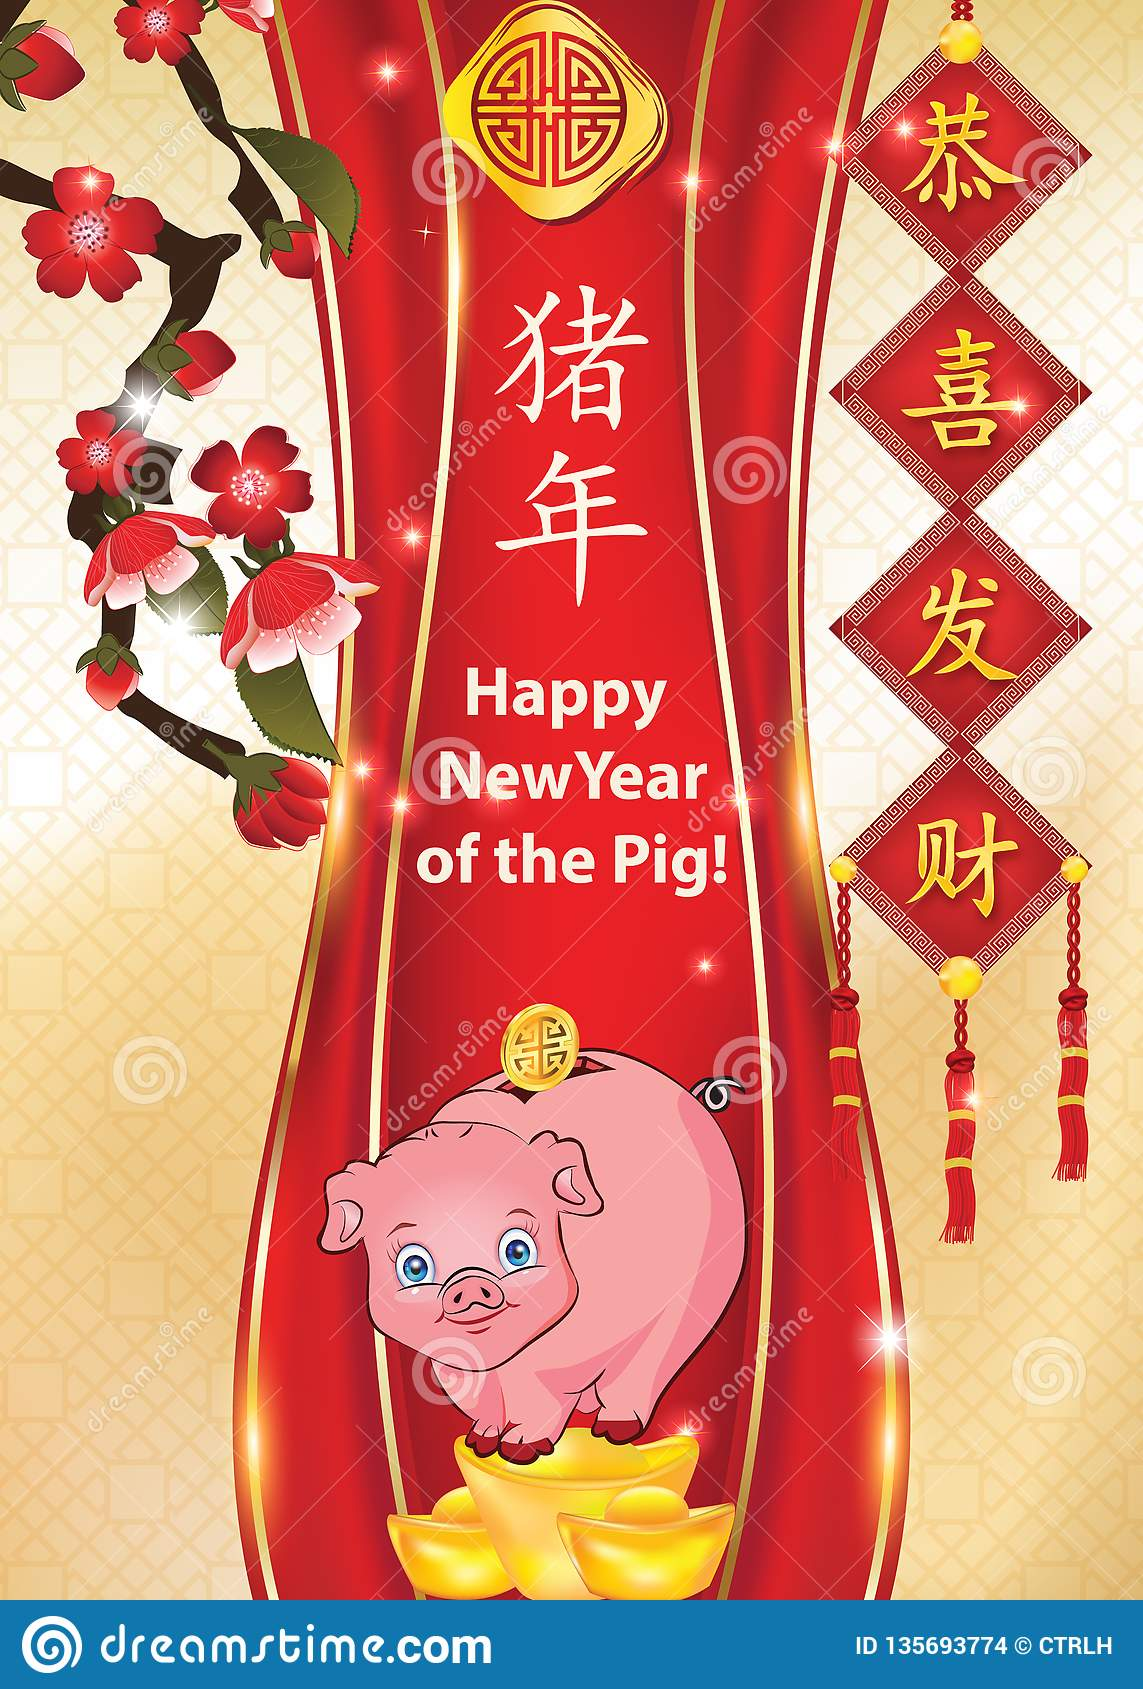 b7c365628 Happy Chinese New Year 2019! - greeting card with text in Chinese and  English. Ideograms translation: Congratulations and make fortune. Year of  the Pig ...